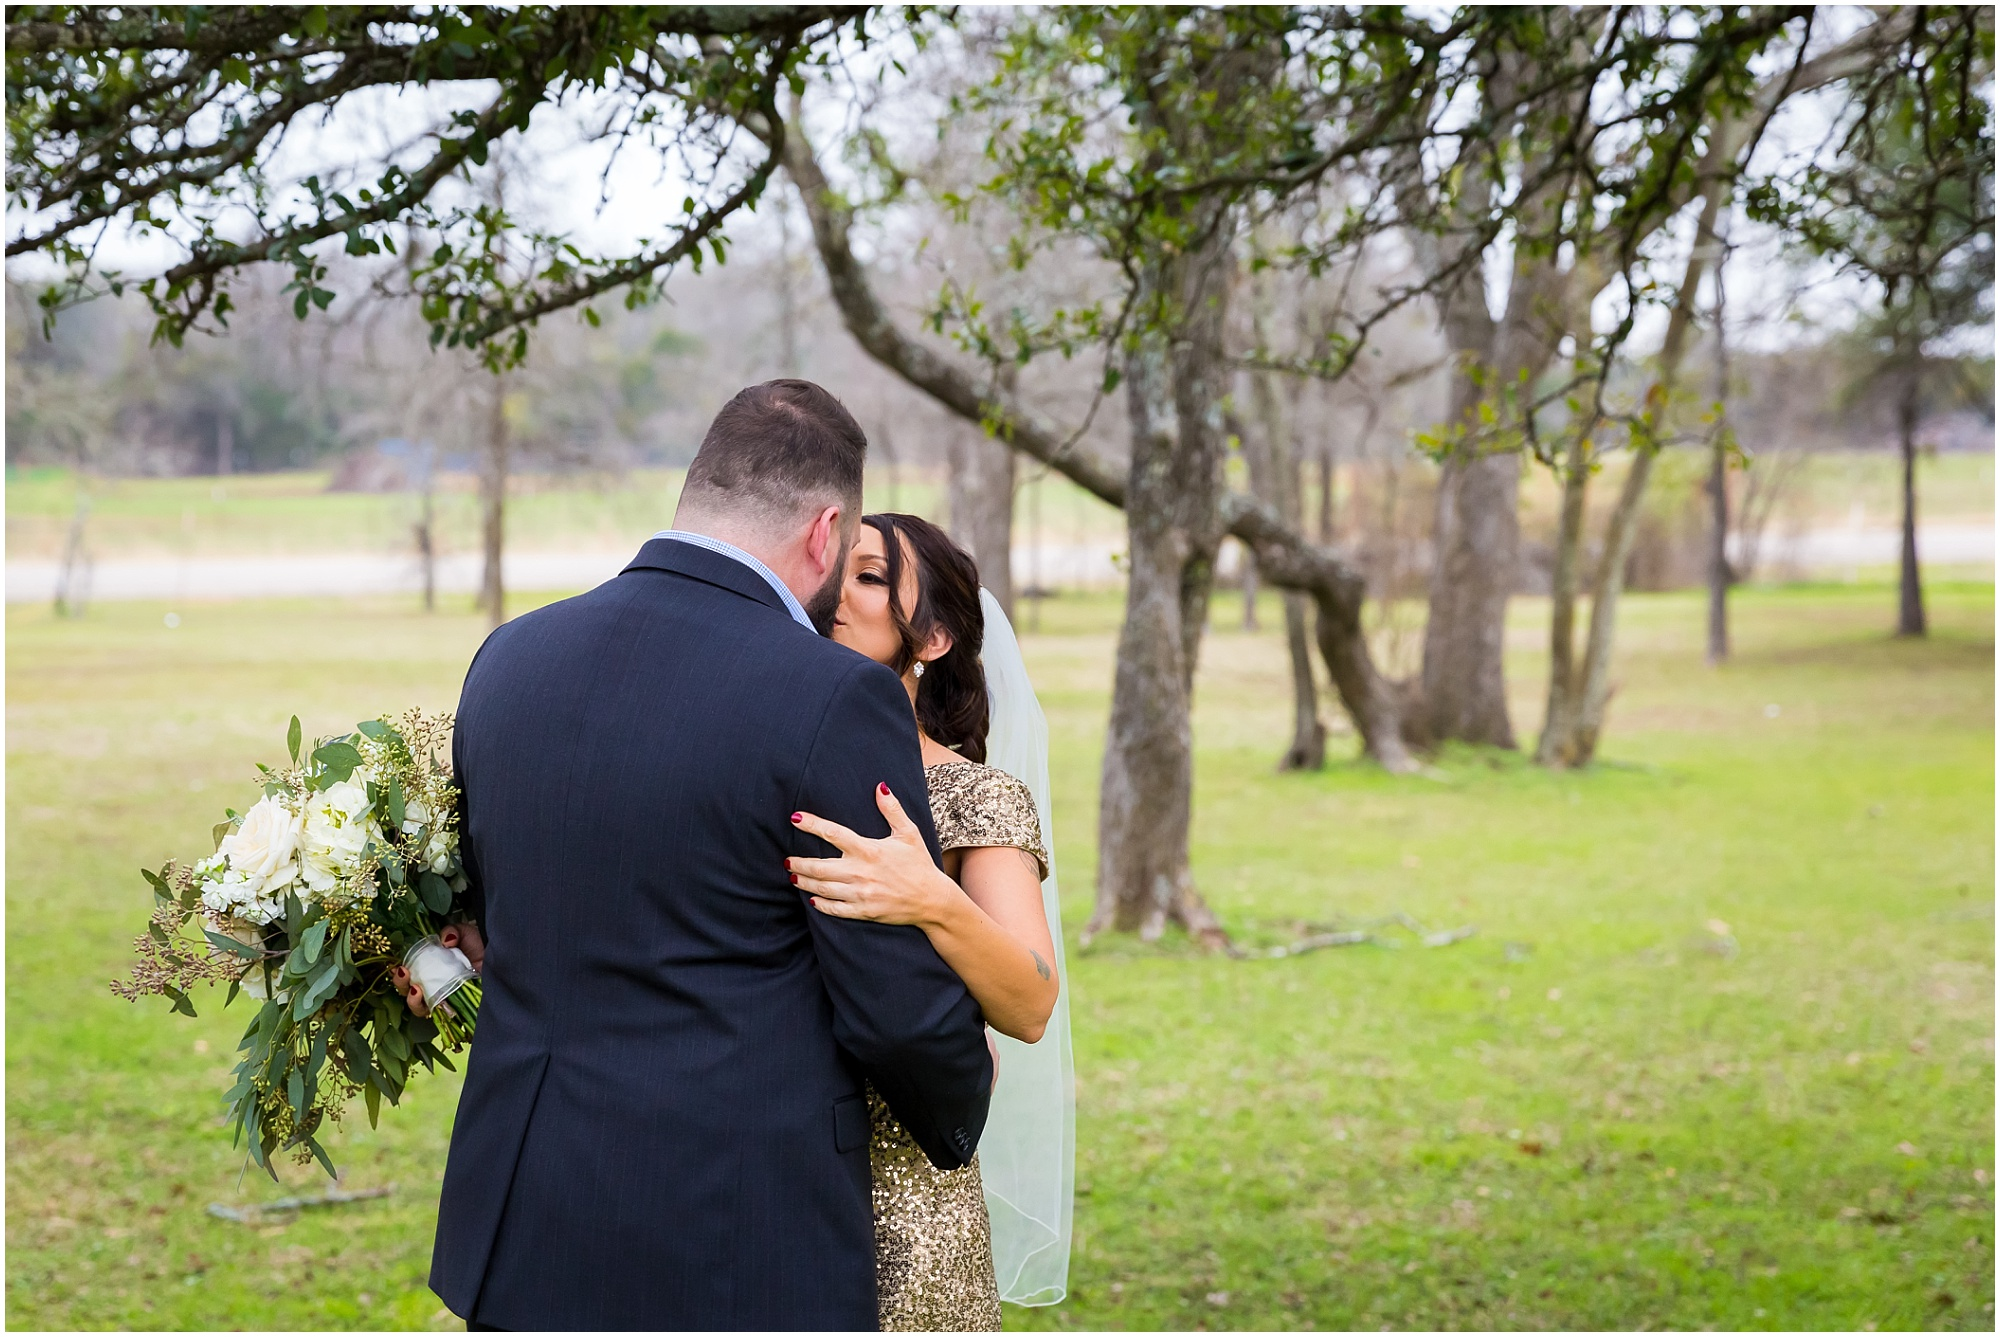 Winter-Elopement-Waco-Texas_0005.jpg